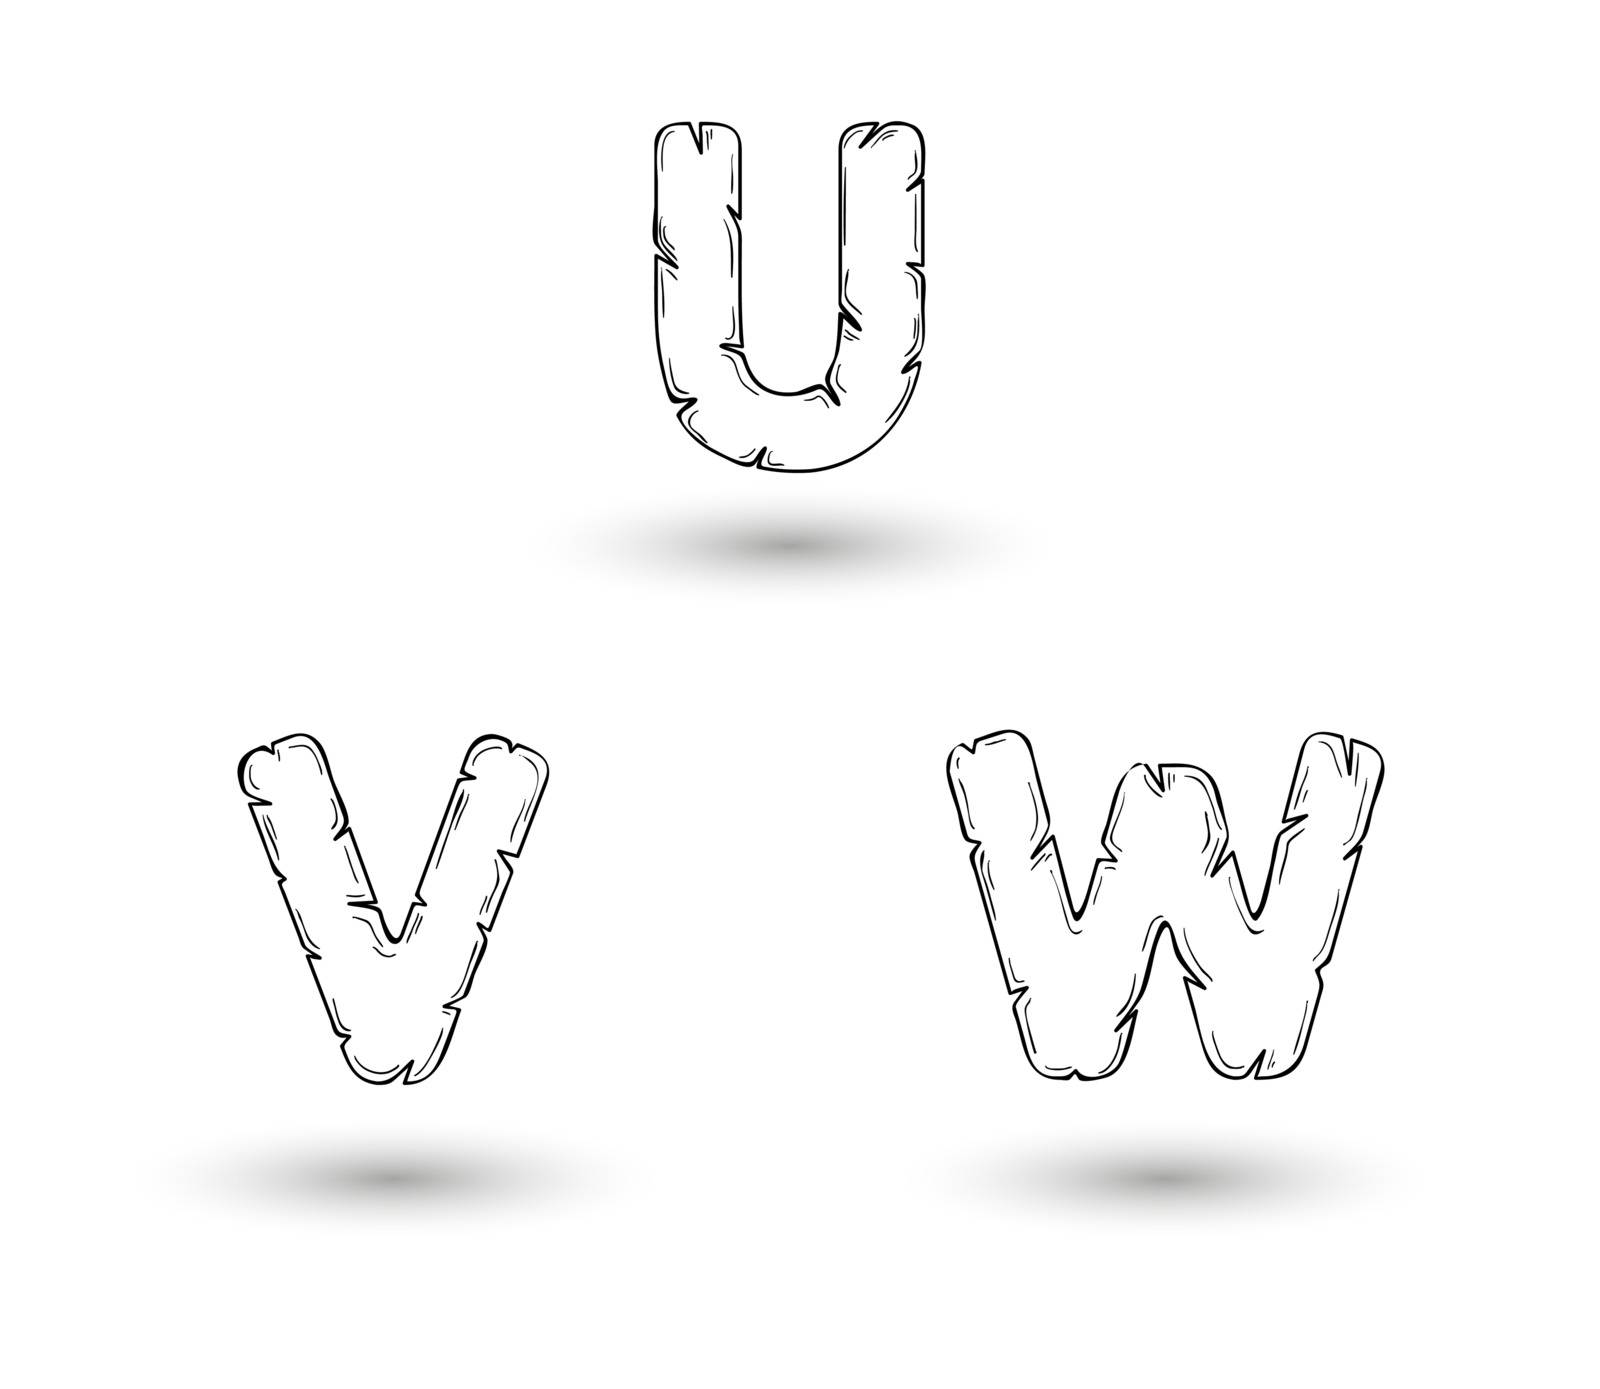 sketch jagged alphabet letters with shadow on white background, X, Y, Z